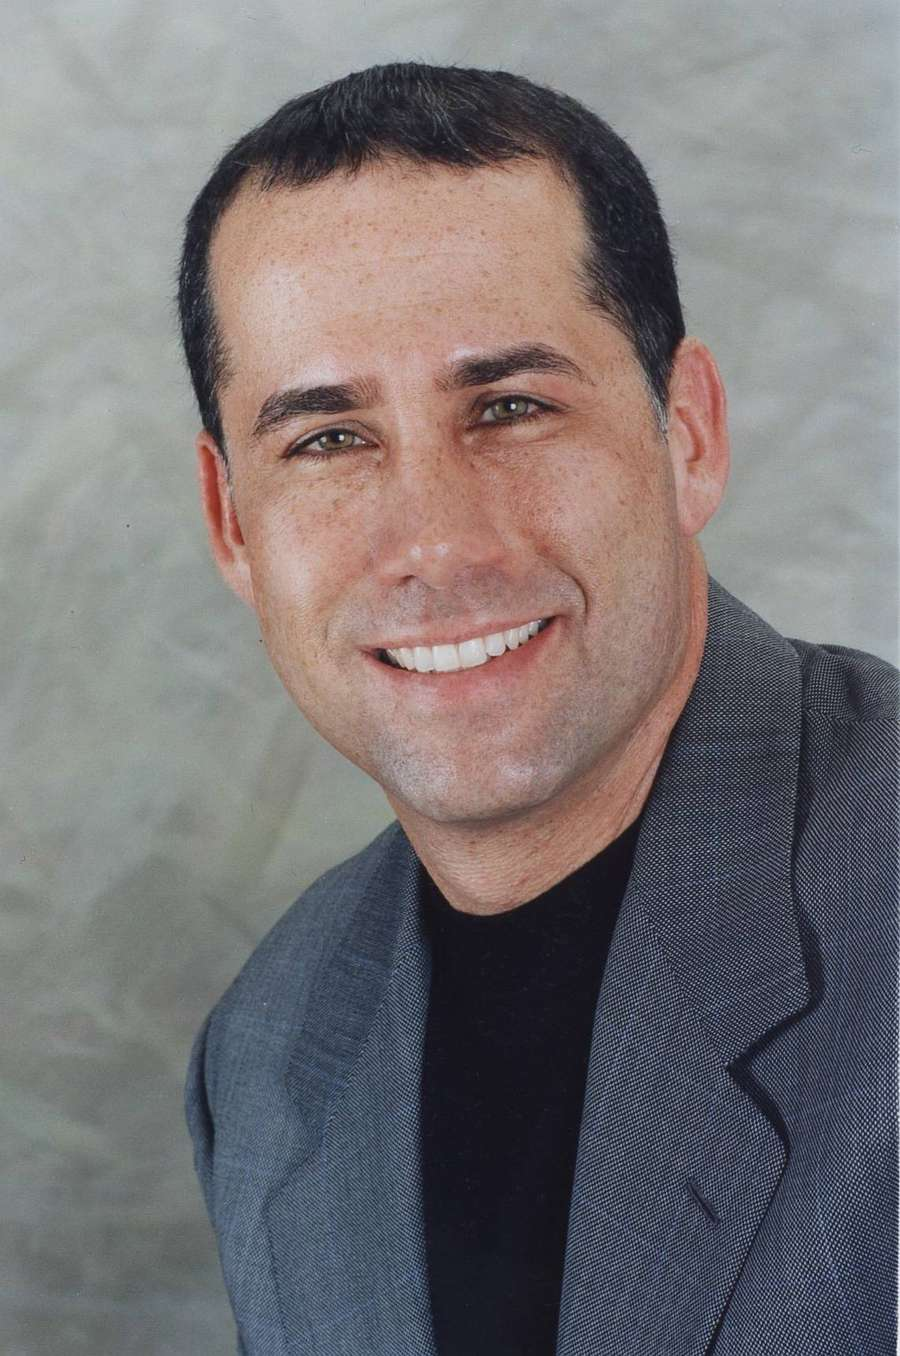 A photo of Philip Levine taken during the mid-90s, when he was president and CEO of OnBoard Media.